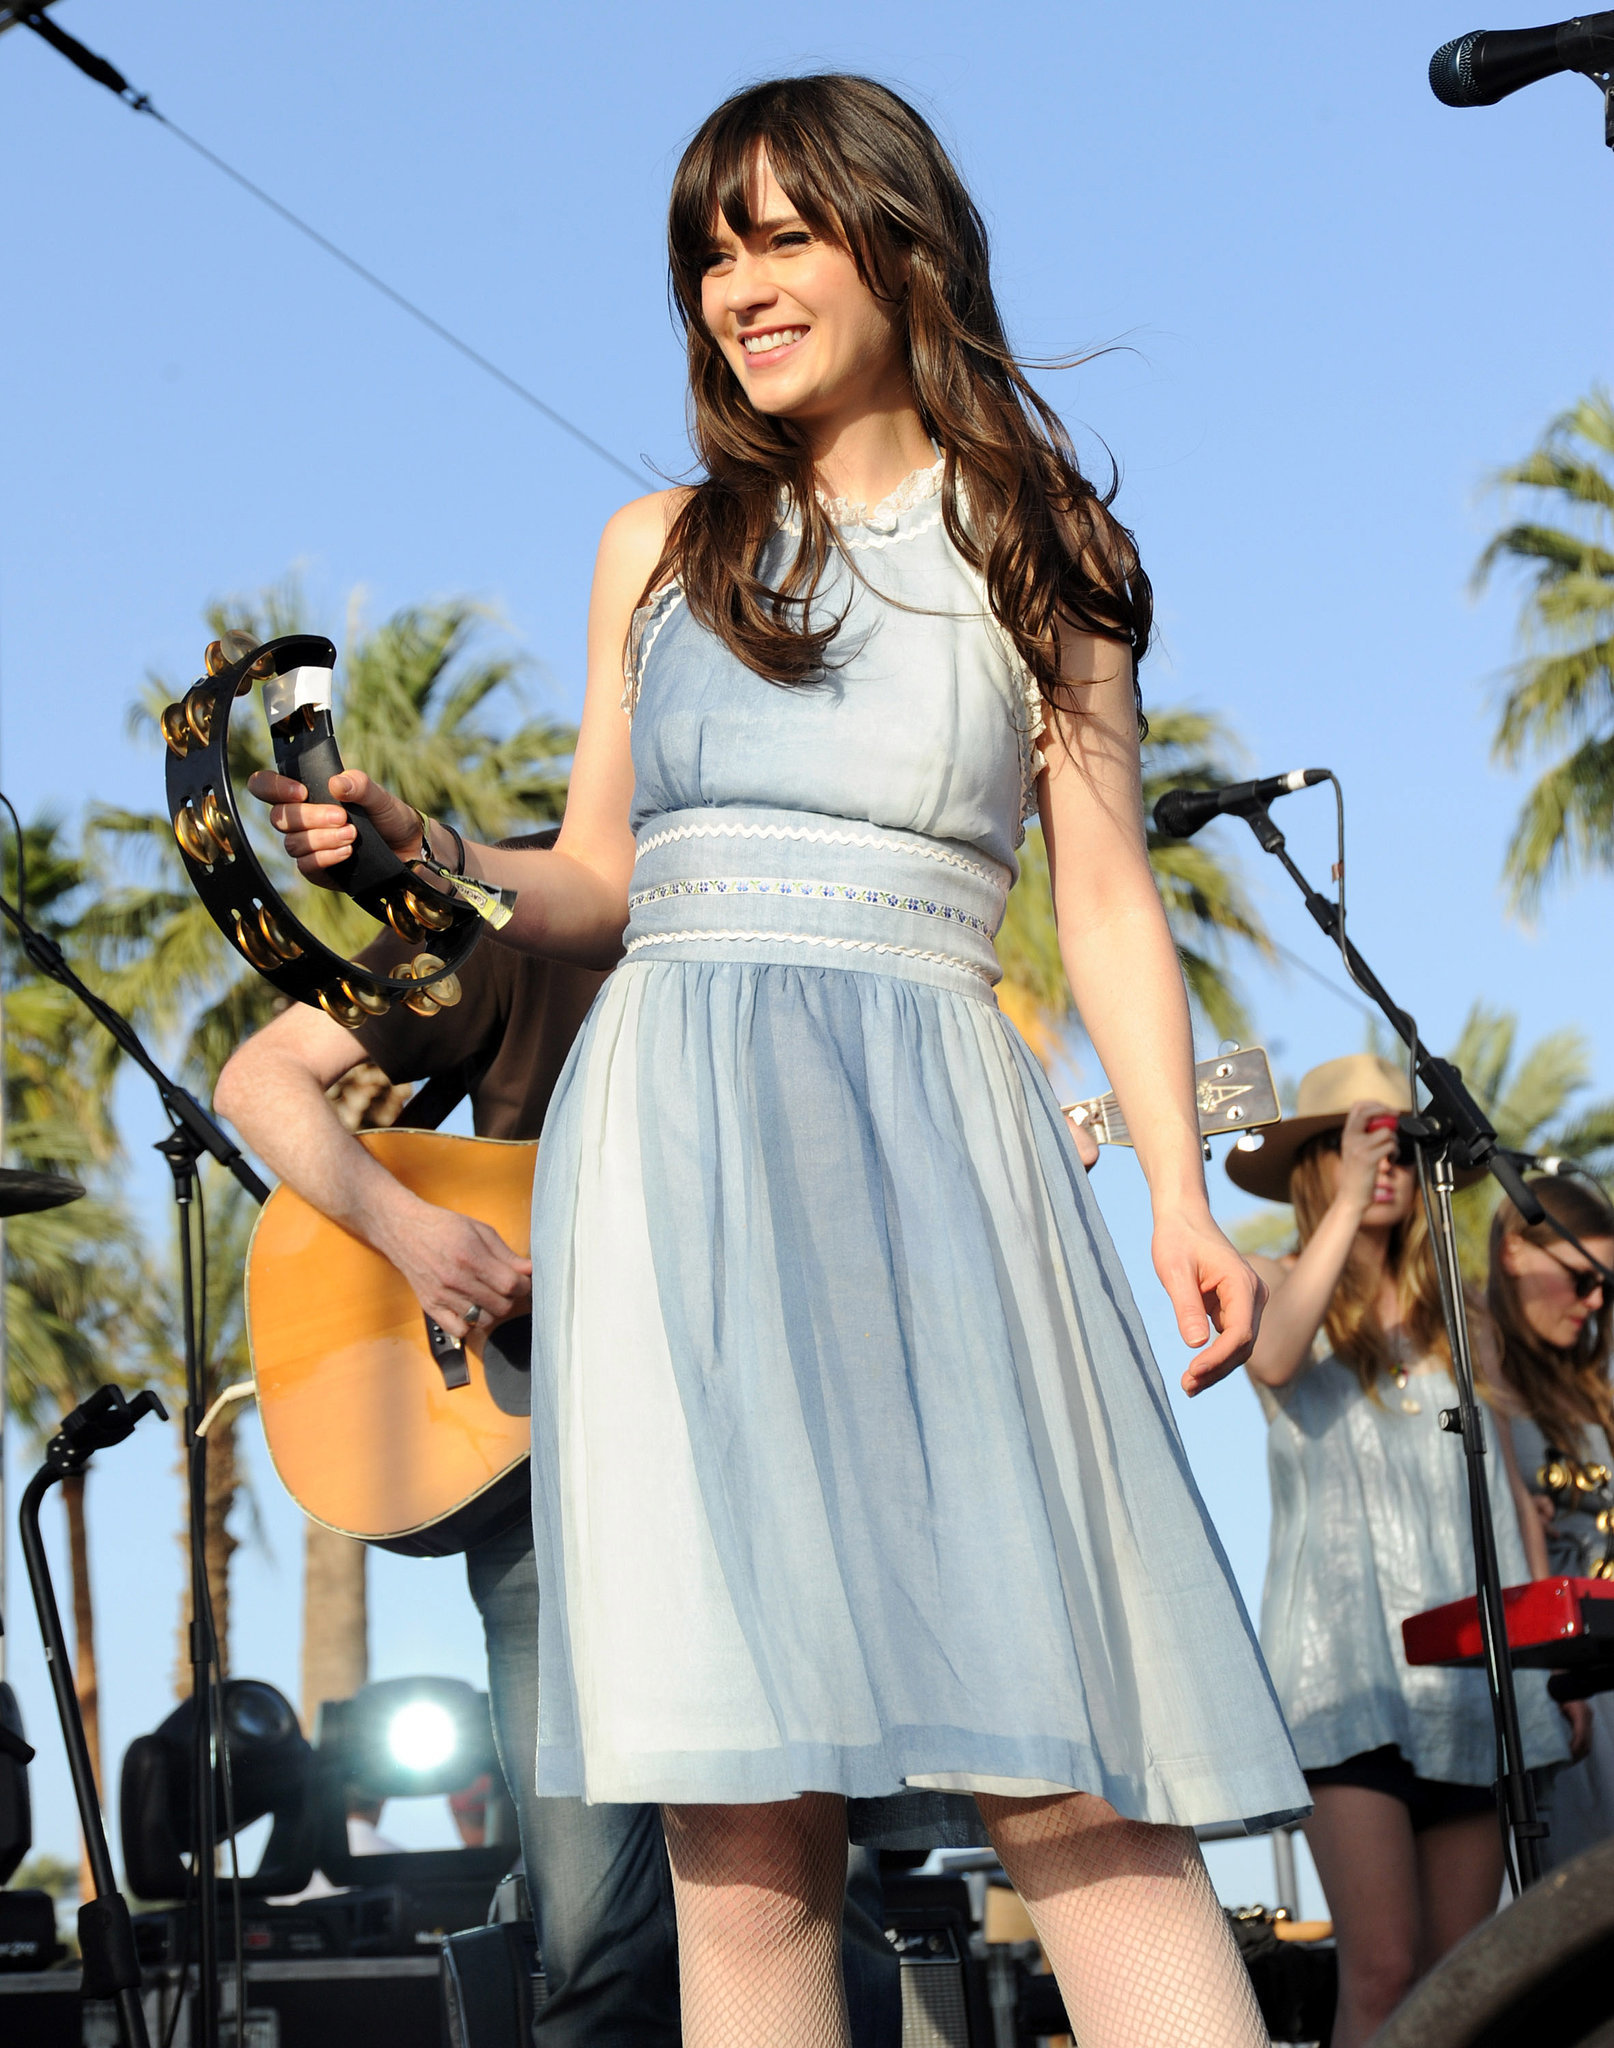 Zooey Deschanel and her band She & Him were part of the 2010 lineup.